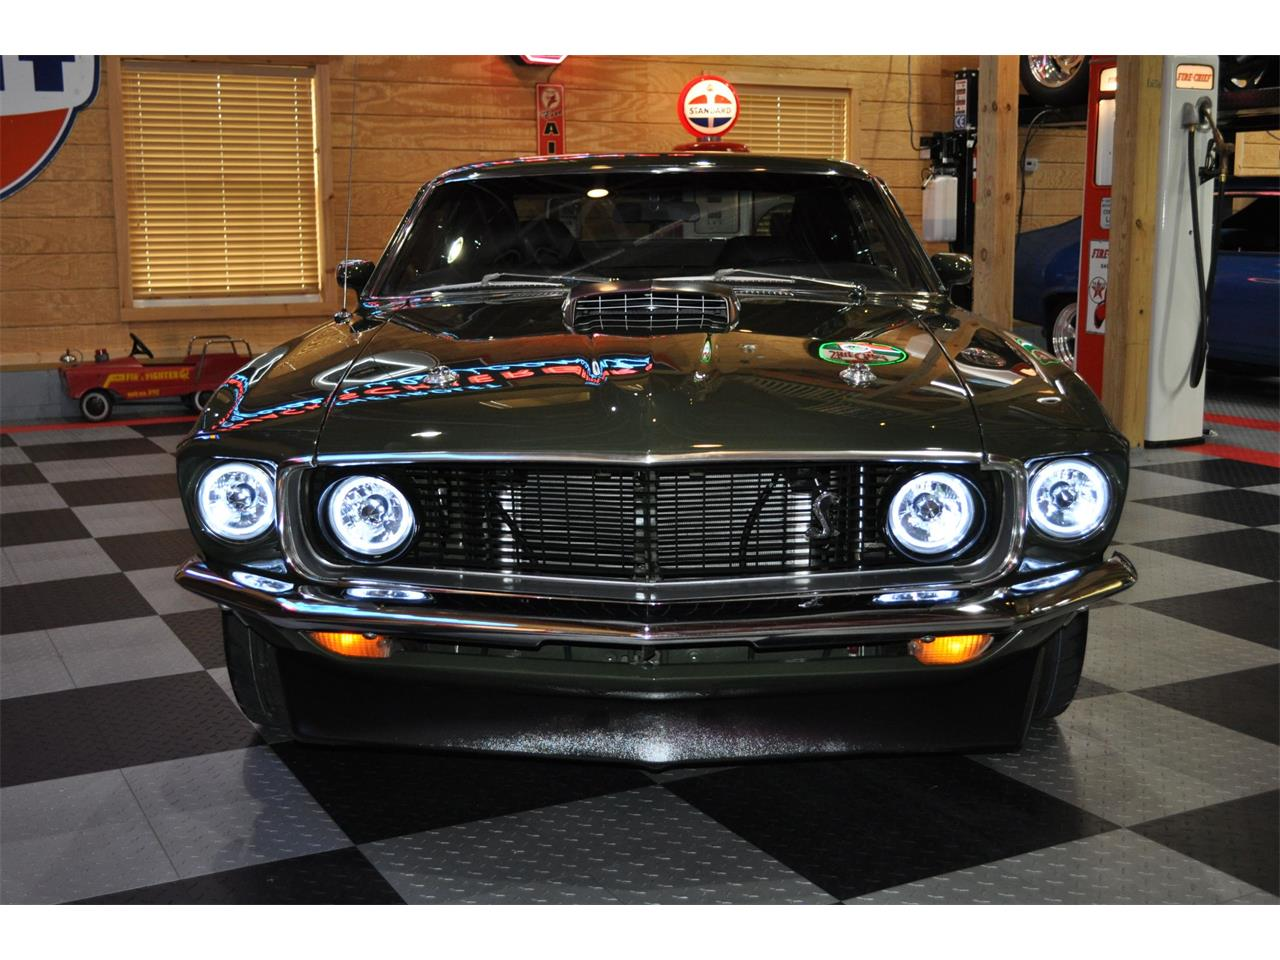 Large Picture of 1969 Ford Mustang GT located in Dunellen New Jersey - $74,995.00 - QNYA